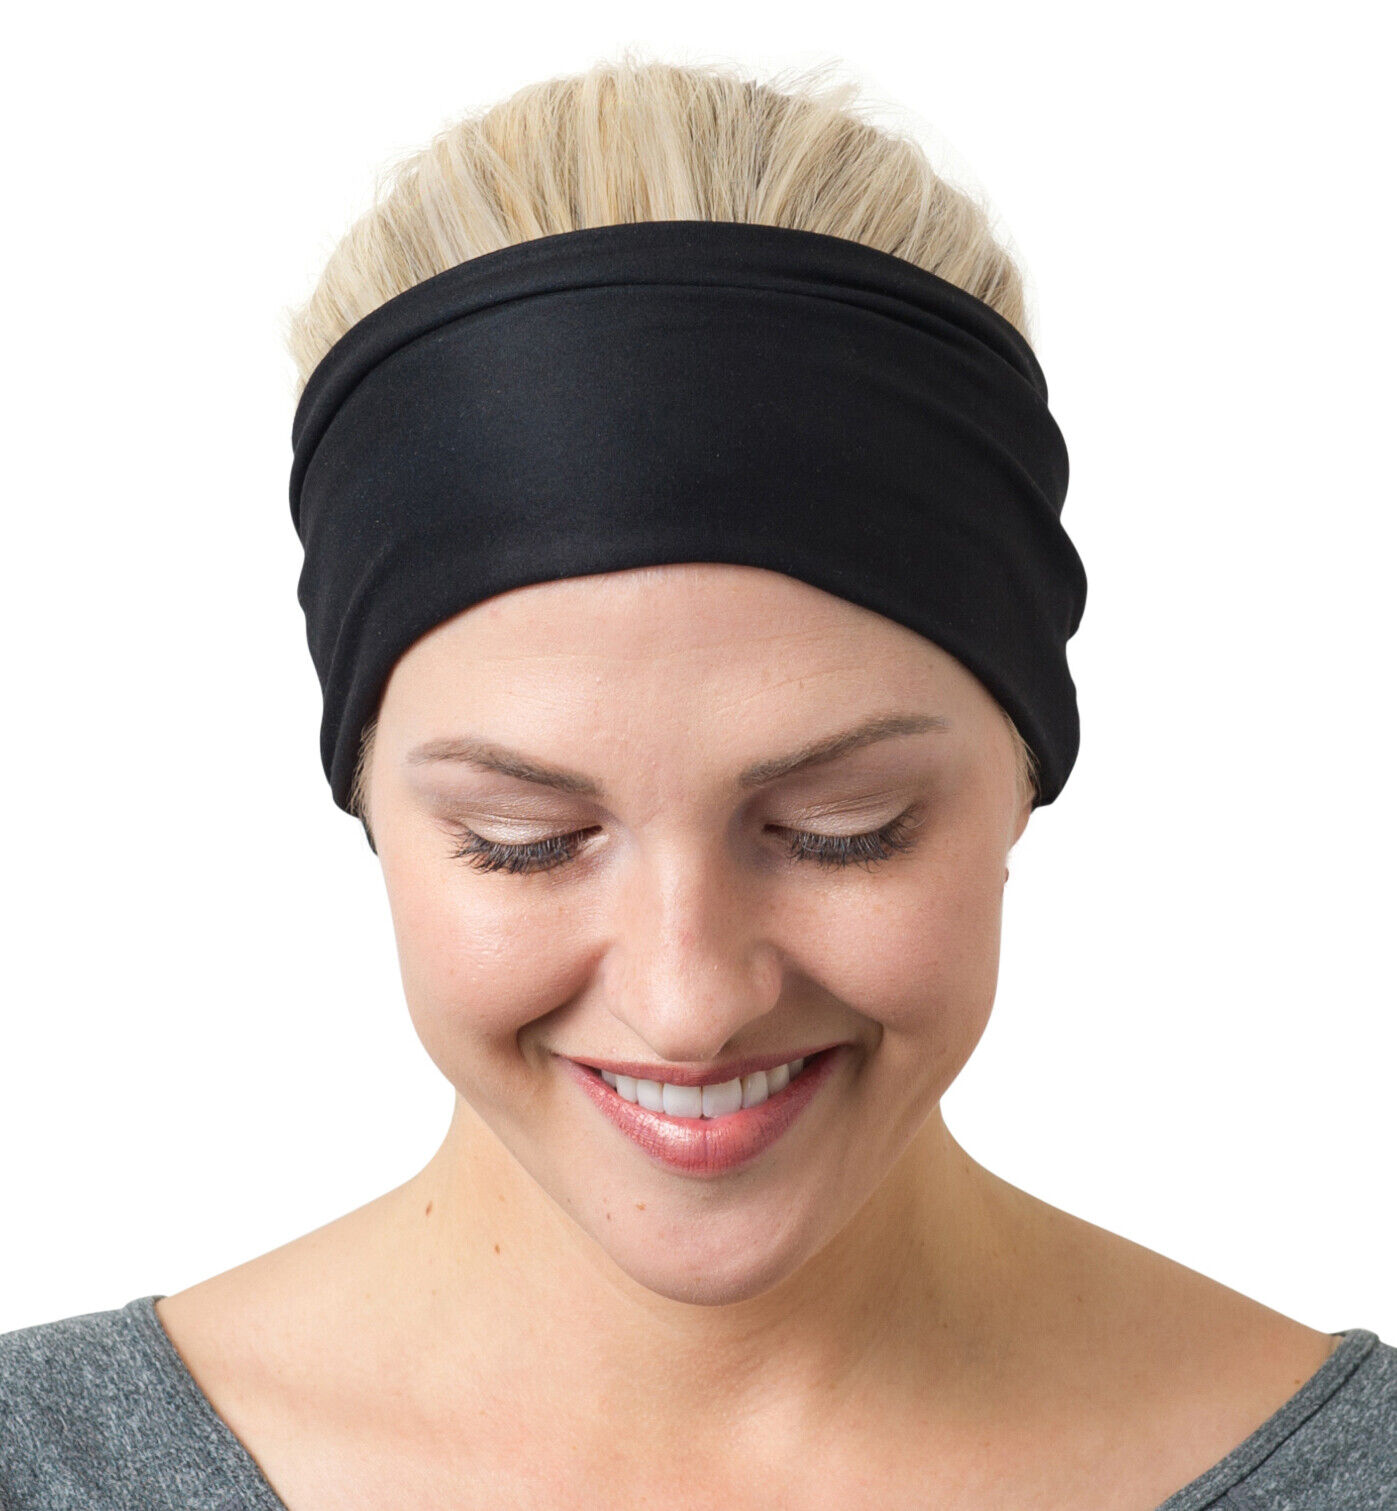 NEW! Yoga Headbands by RiptGear® Wide Non-Slip Sweatband Gy